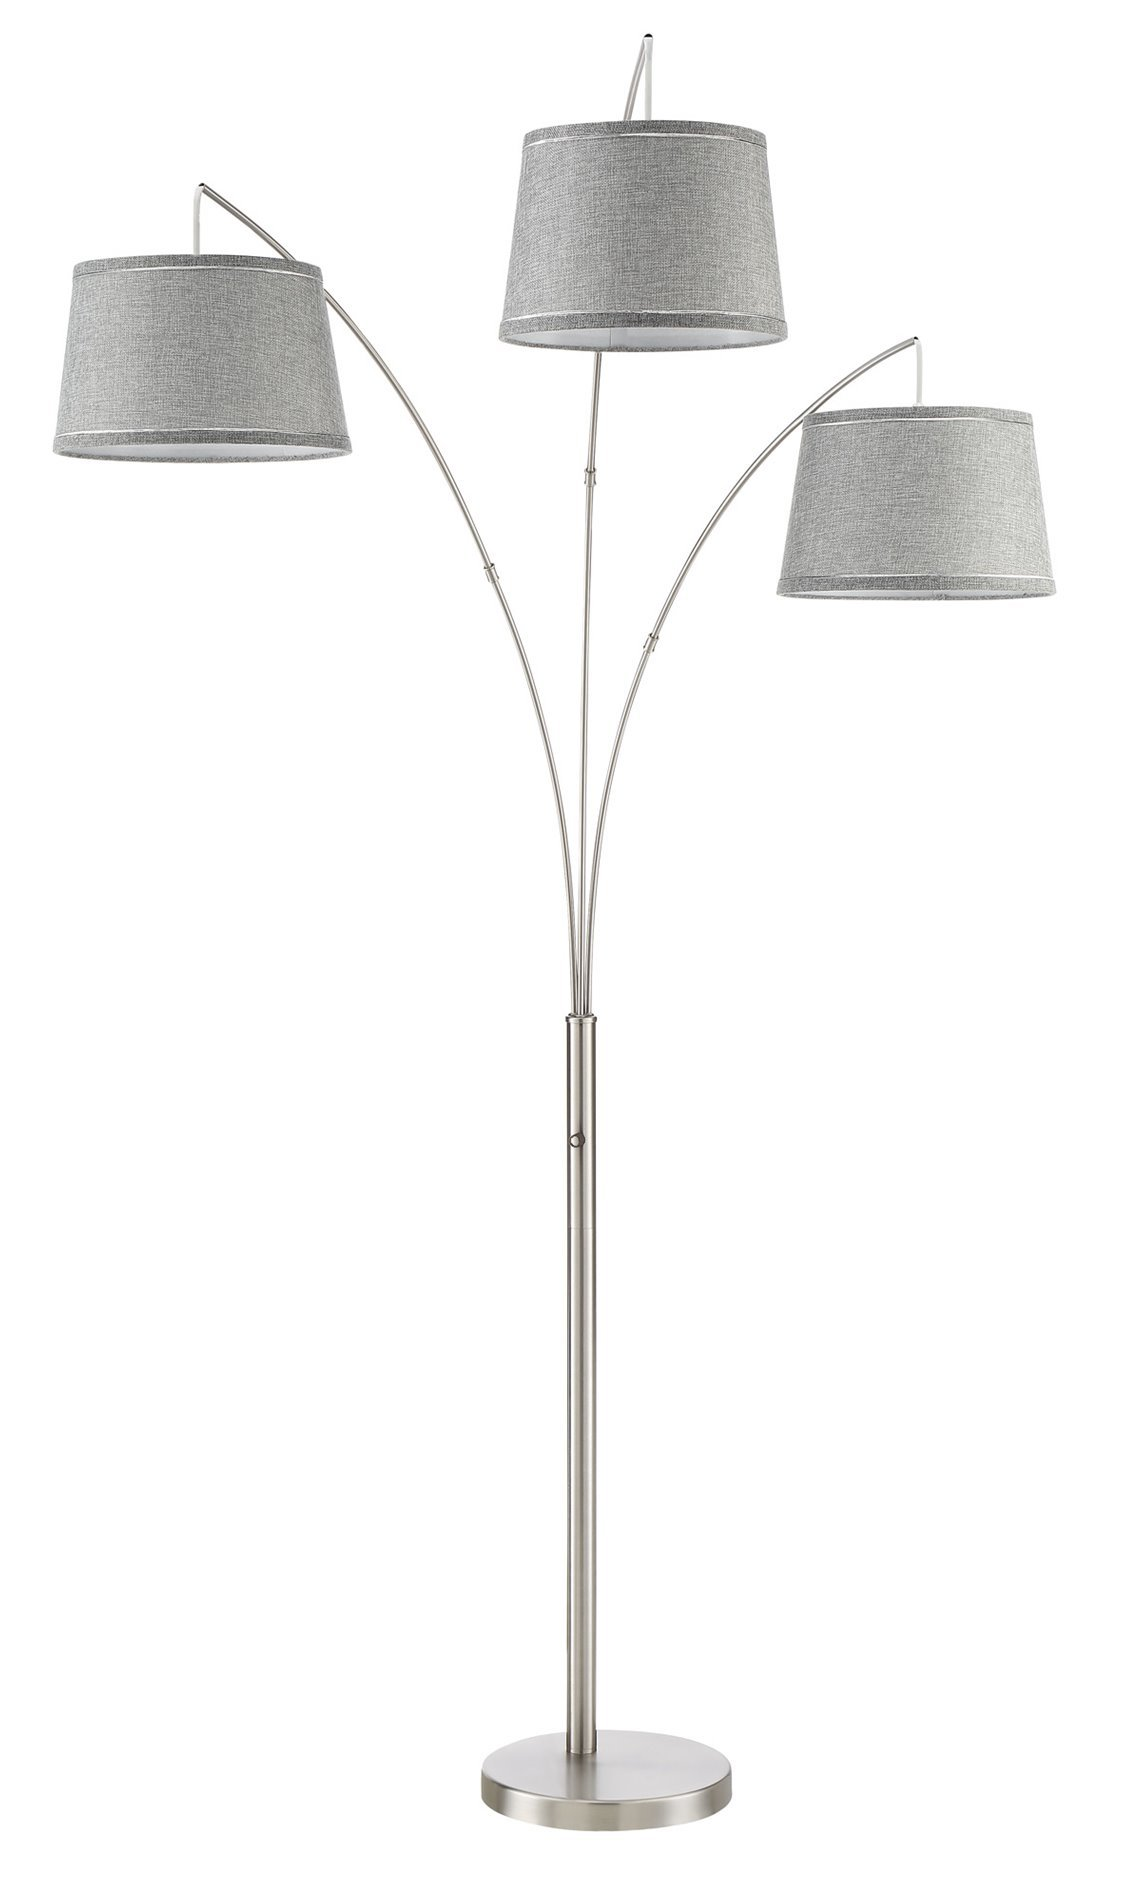 Revel Akira 78.5'' Modern 3-Light Arc Floor Lamp with 4-Way Switch, Gray Burlap Shades + Brushed Nickel Finish (May include stains/blemishes) by Revel